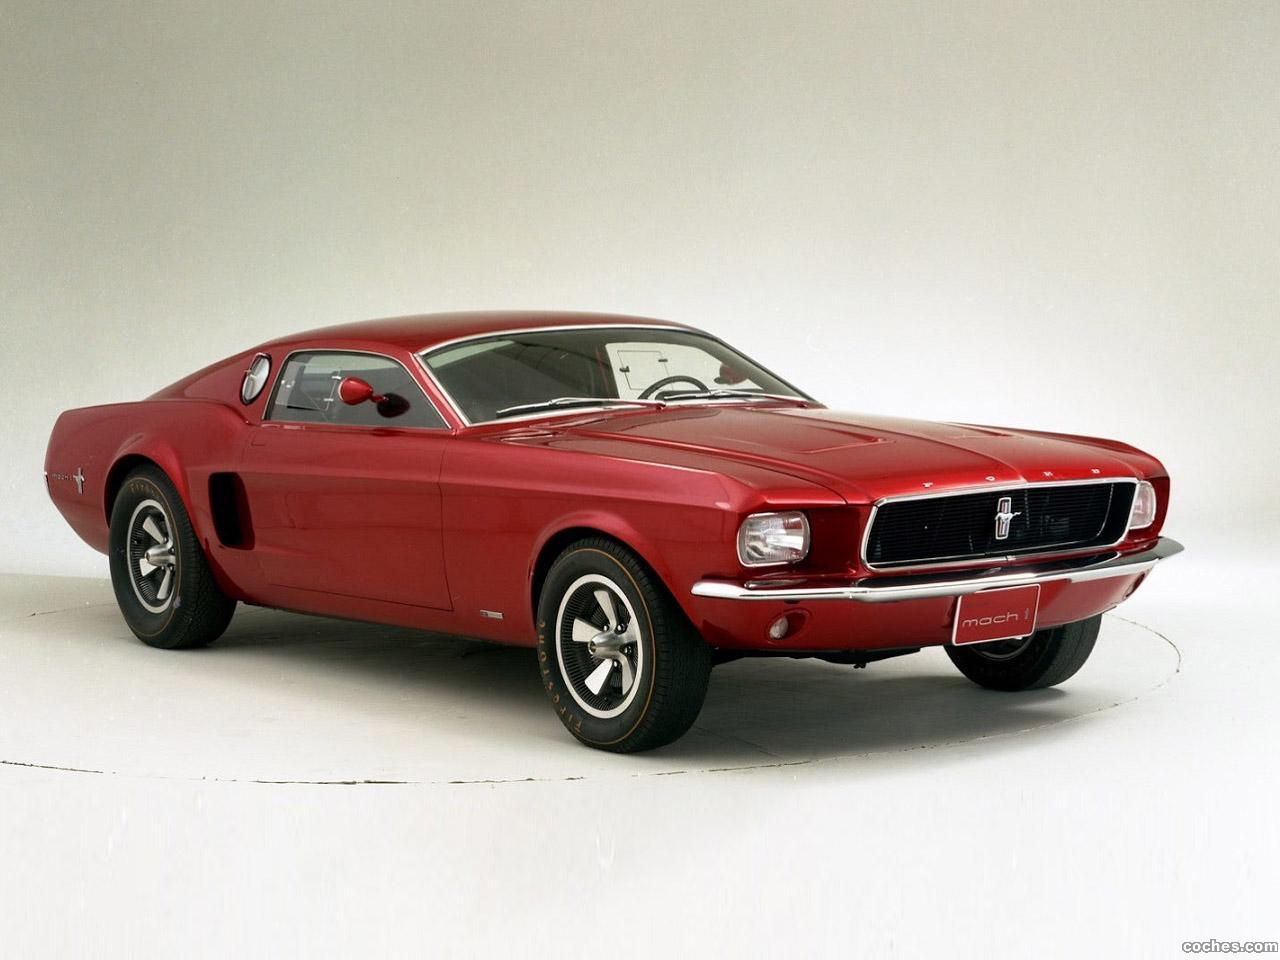 Ford mustang mach 1 prototype no2 1965